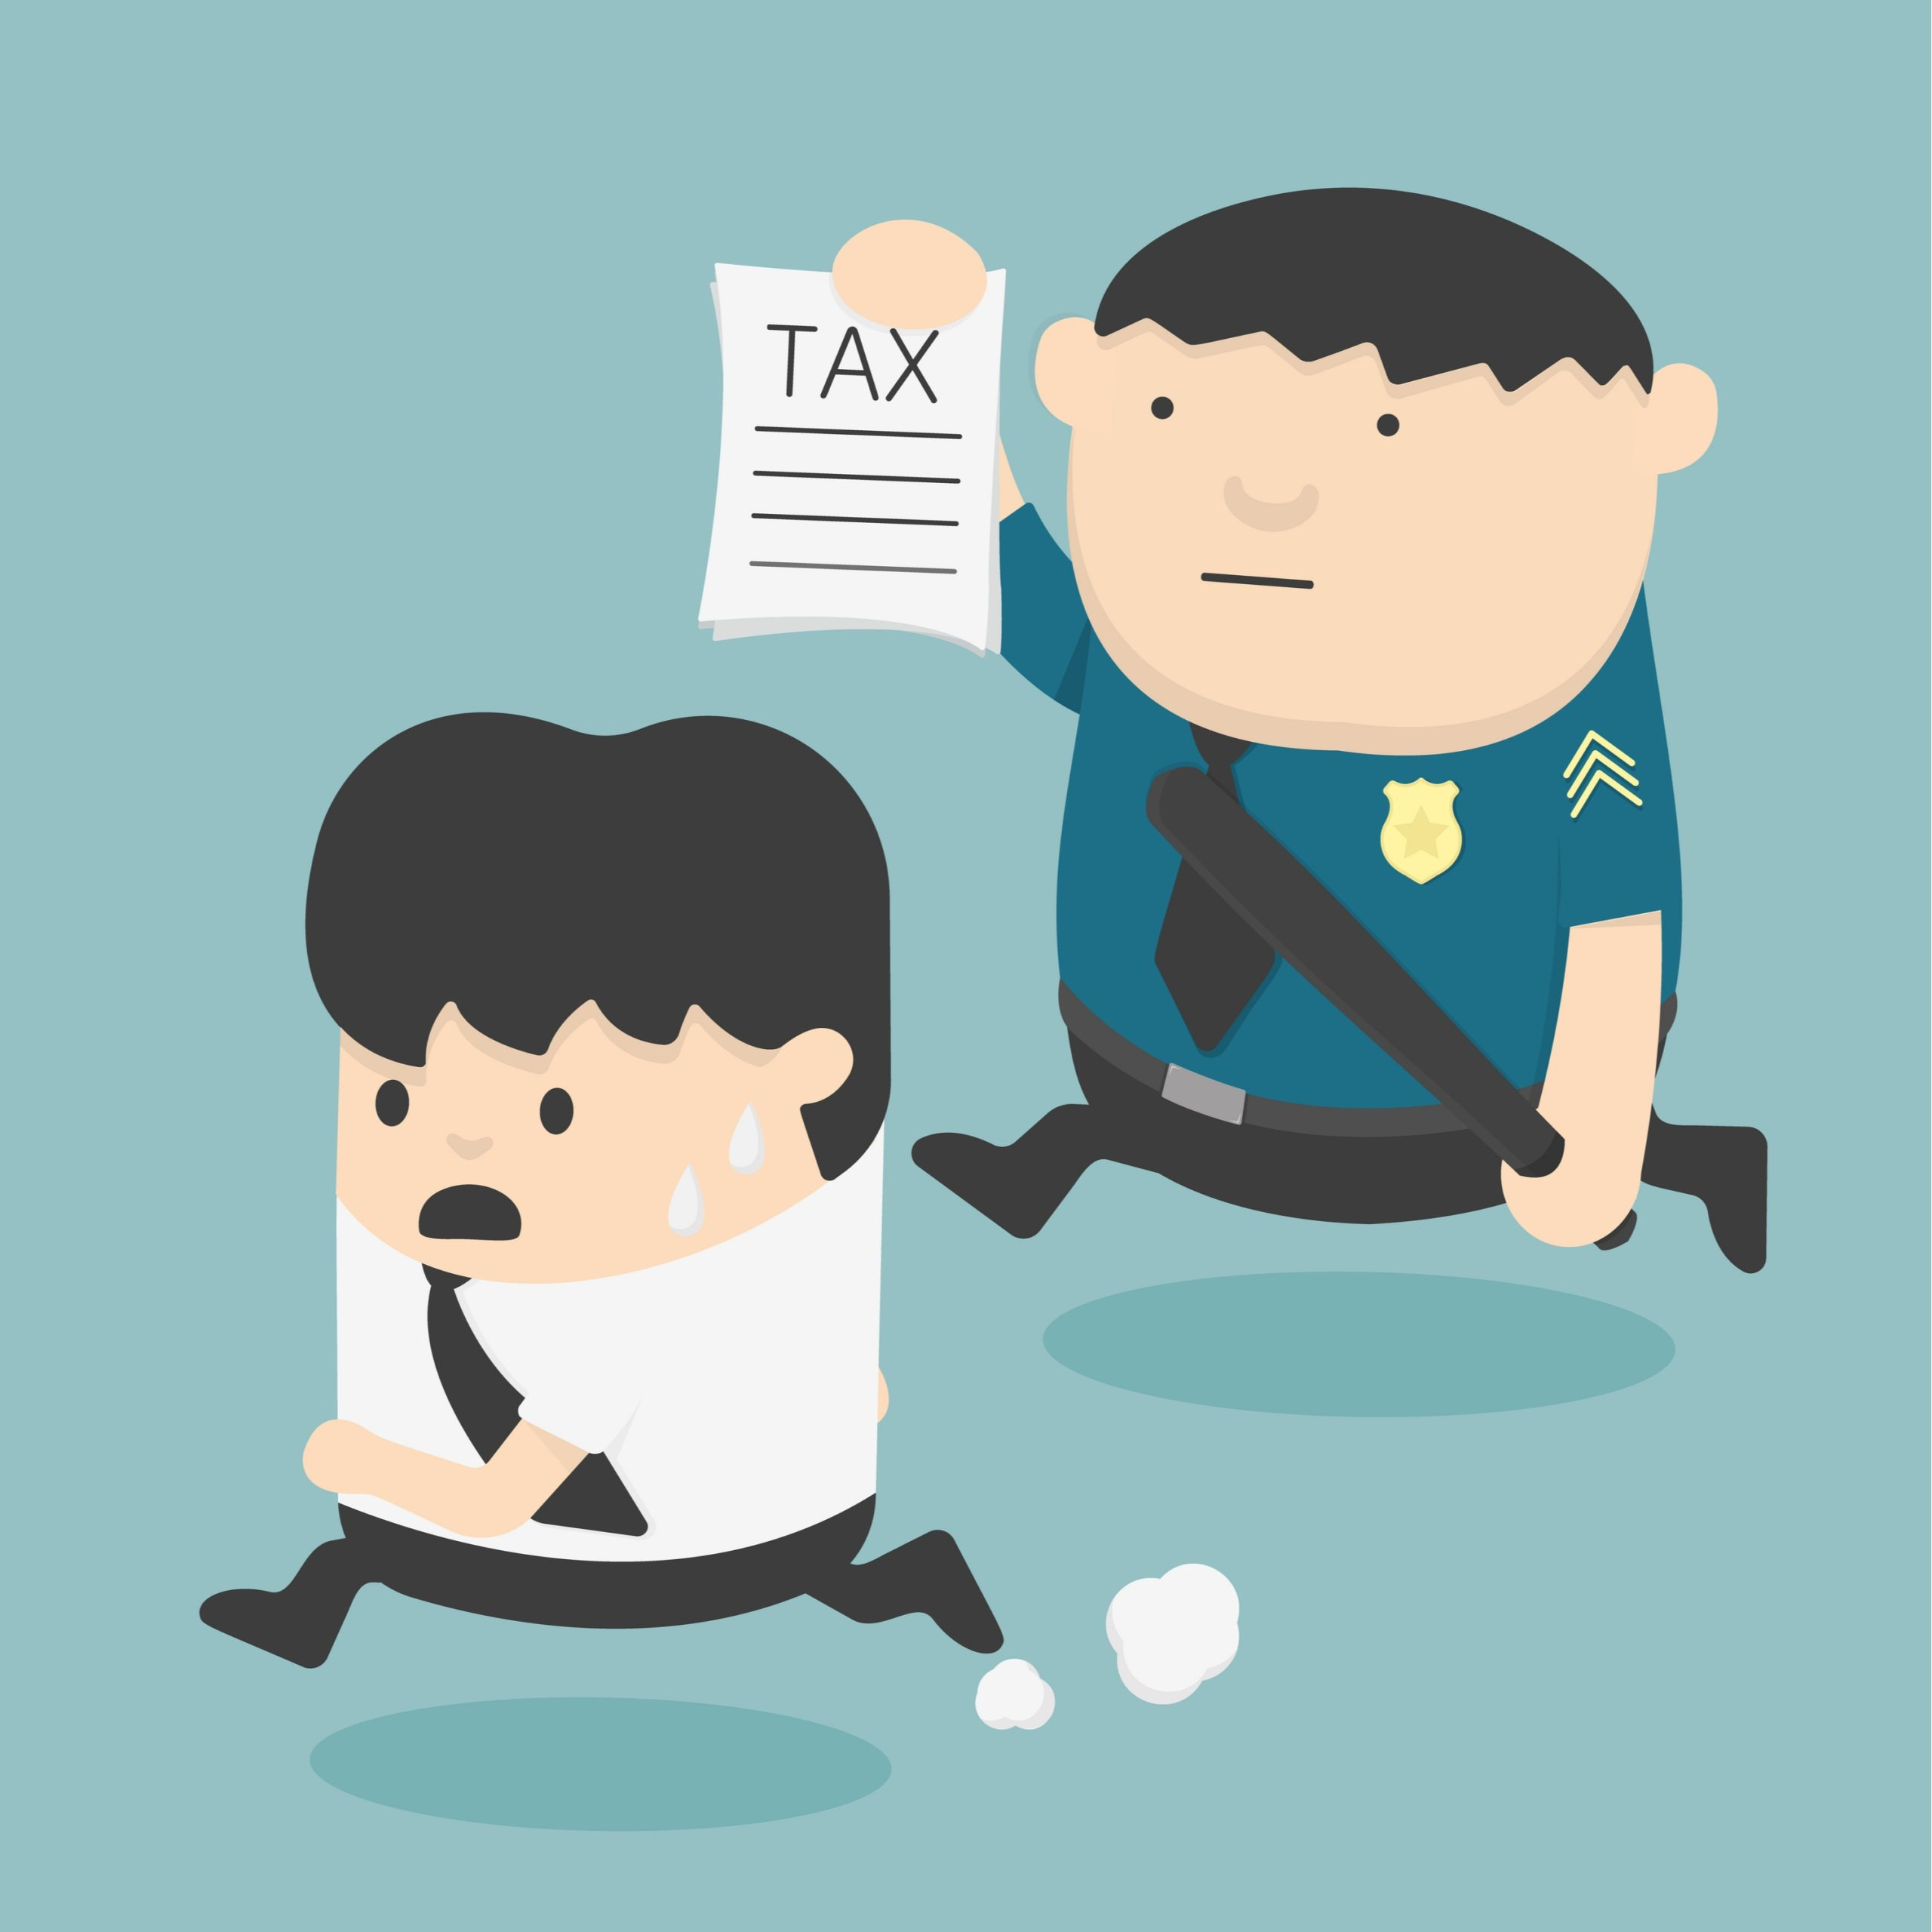 criminal tax evasion and penalties